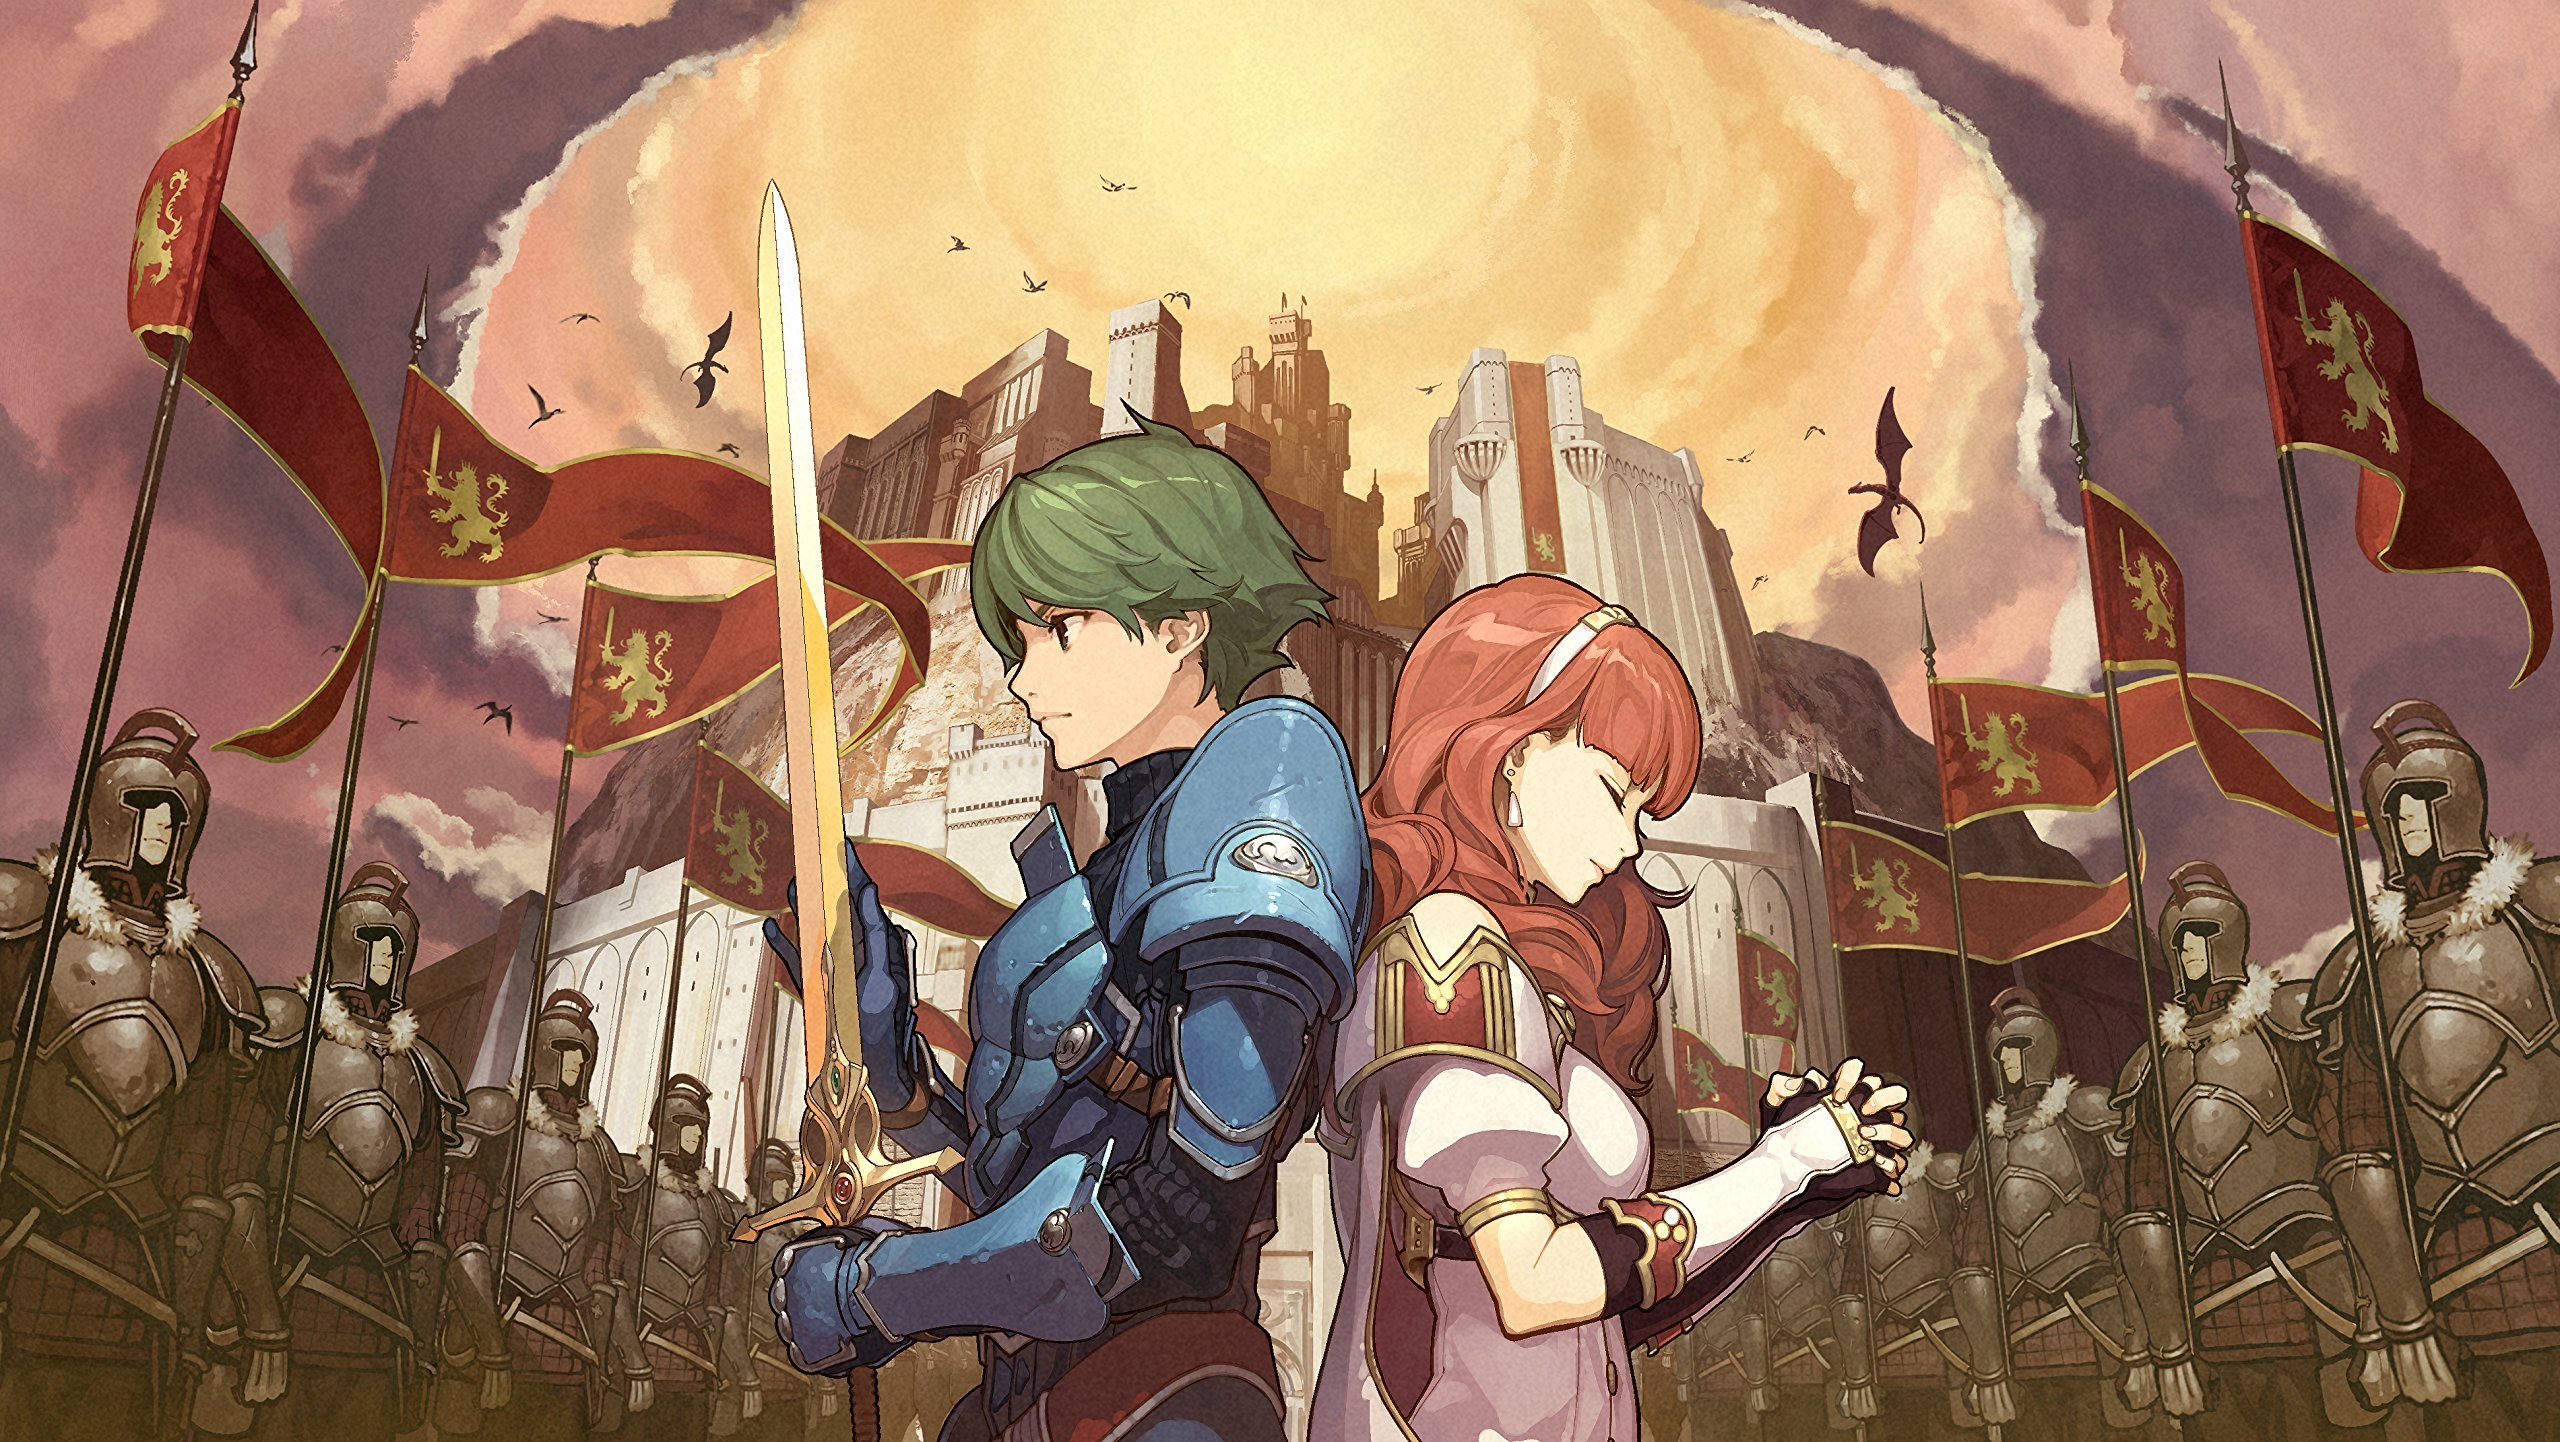 Modojo | Fire Emblem Echoes: Shadows of Valentia Review - What's Old is New Again